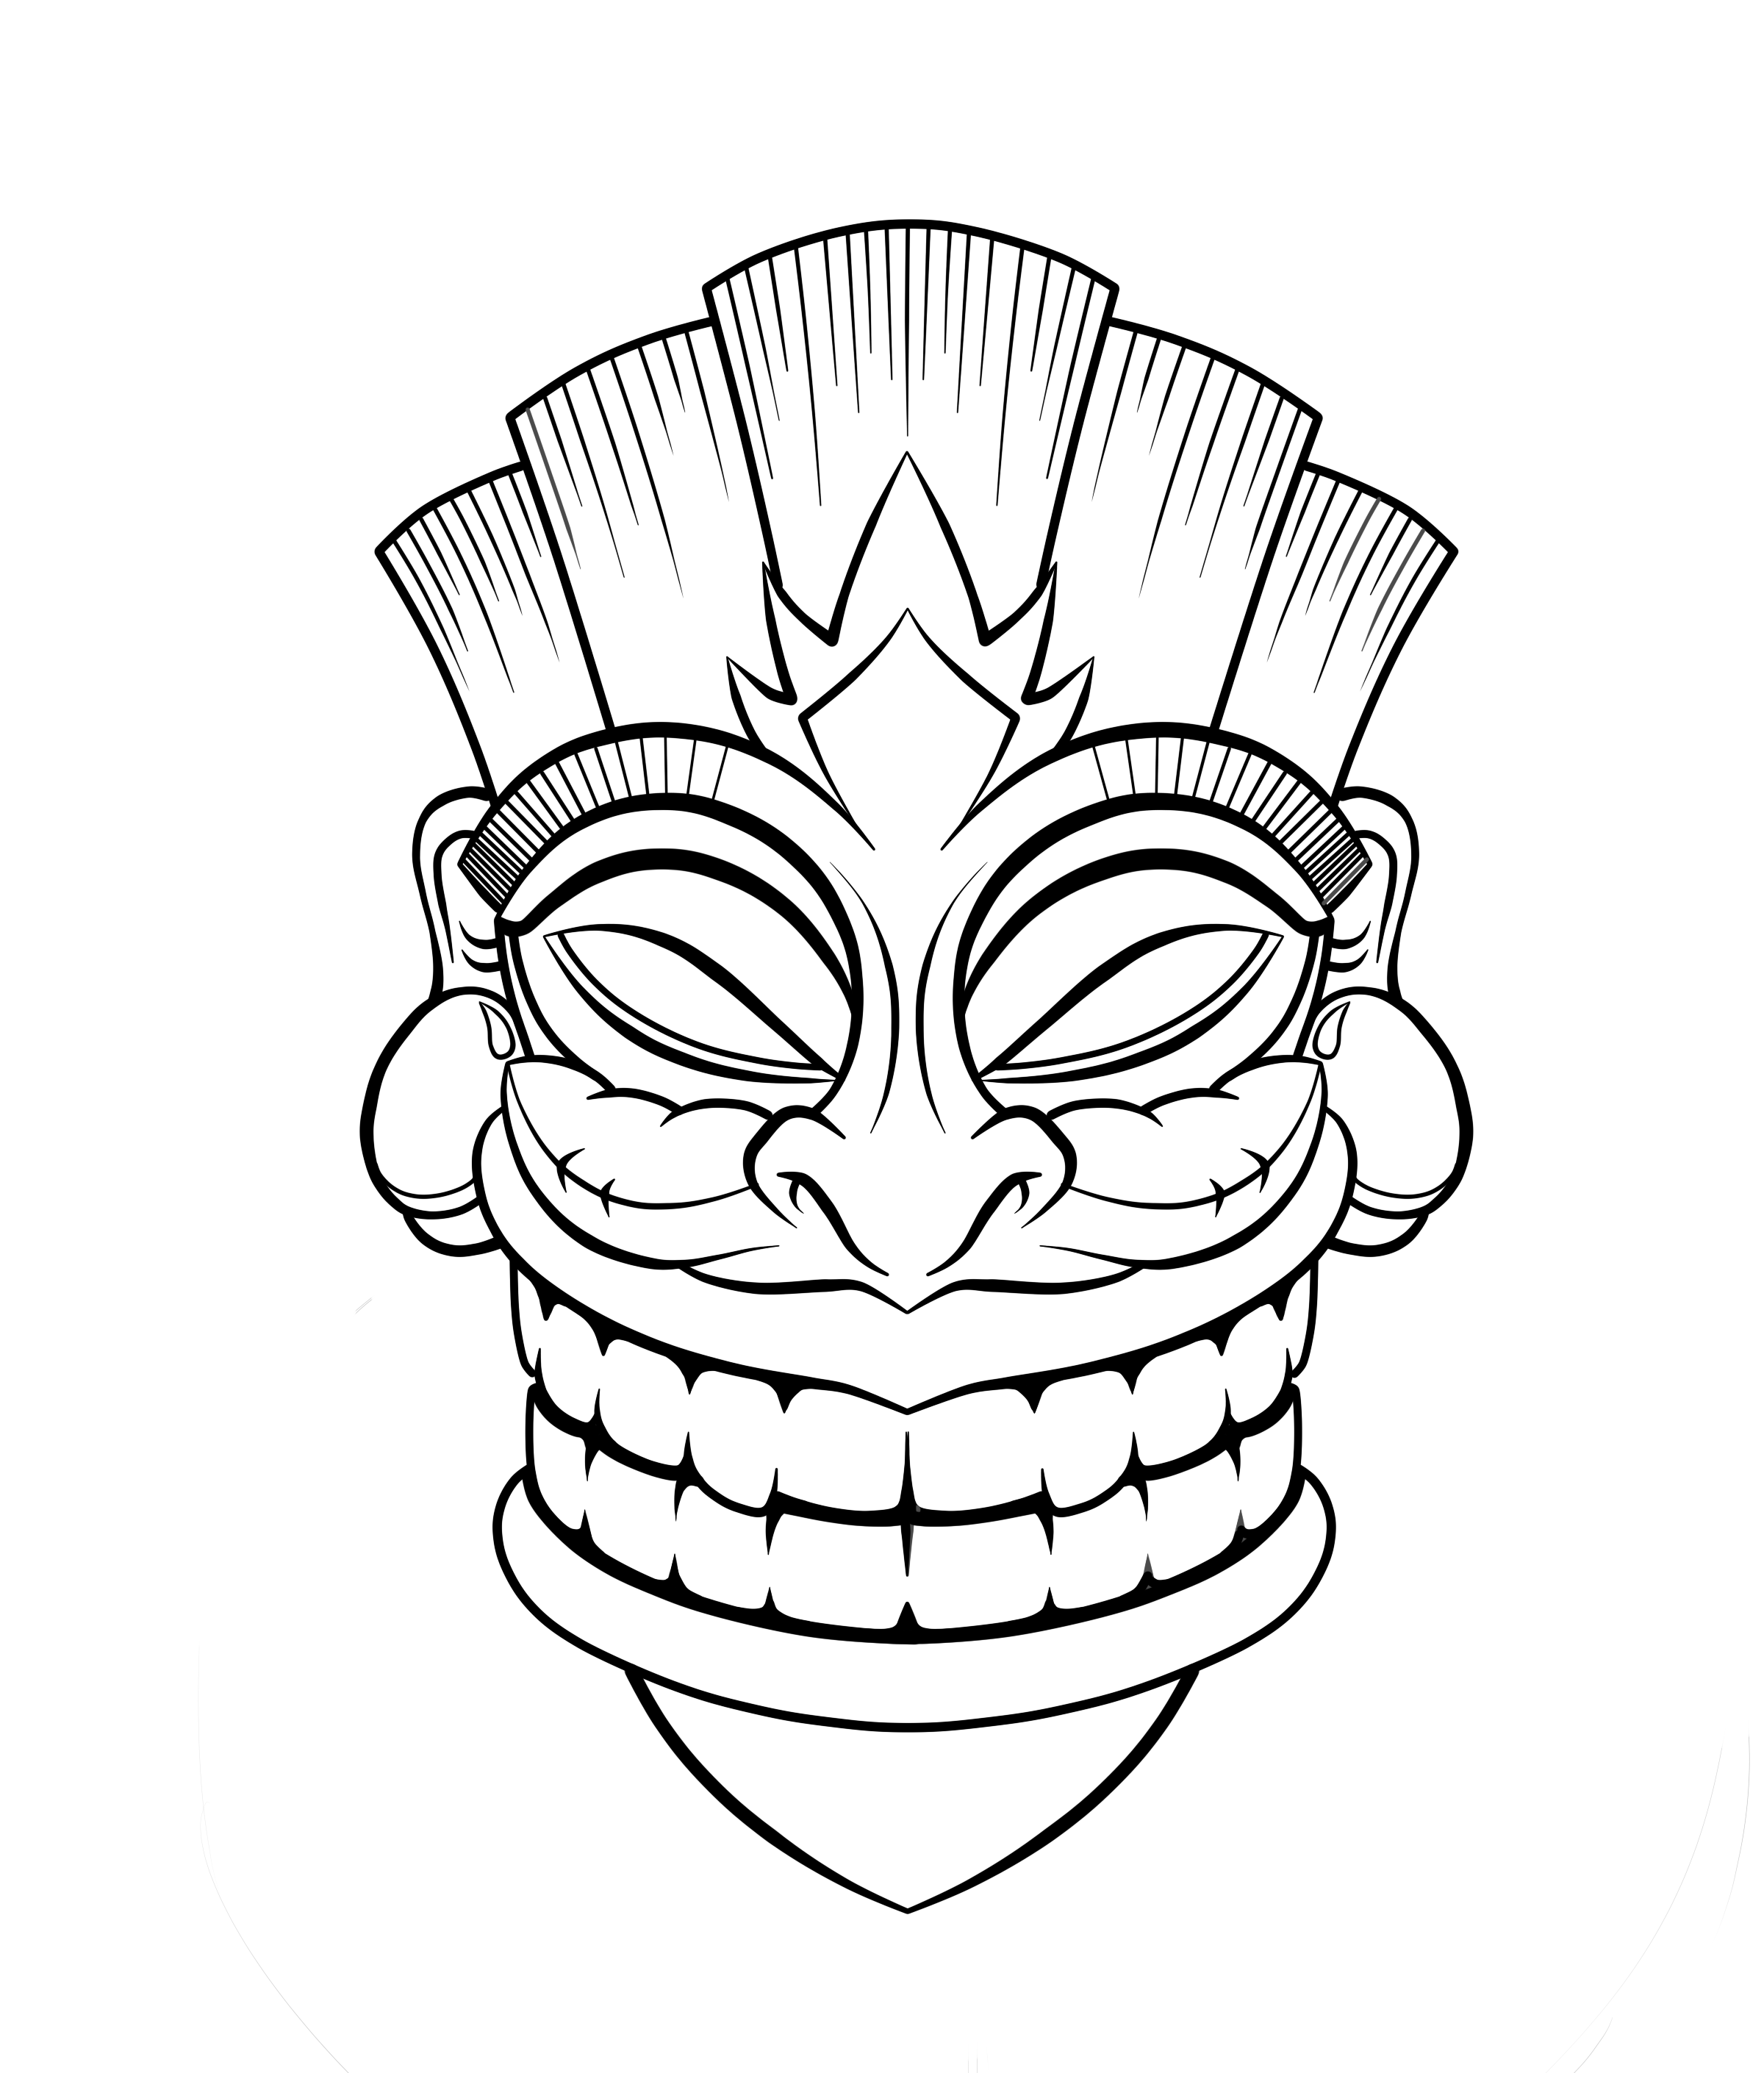 tiki man coloring pages - photo#23